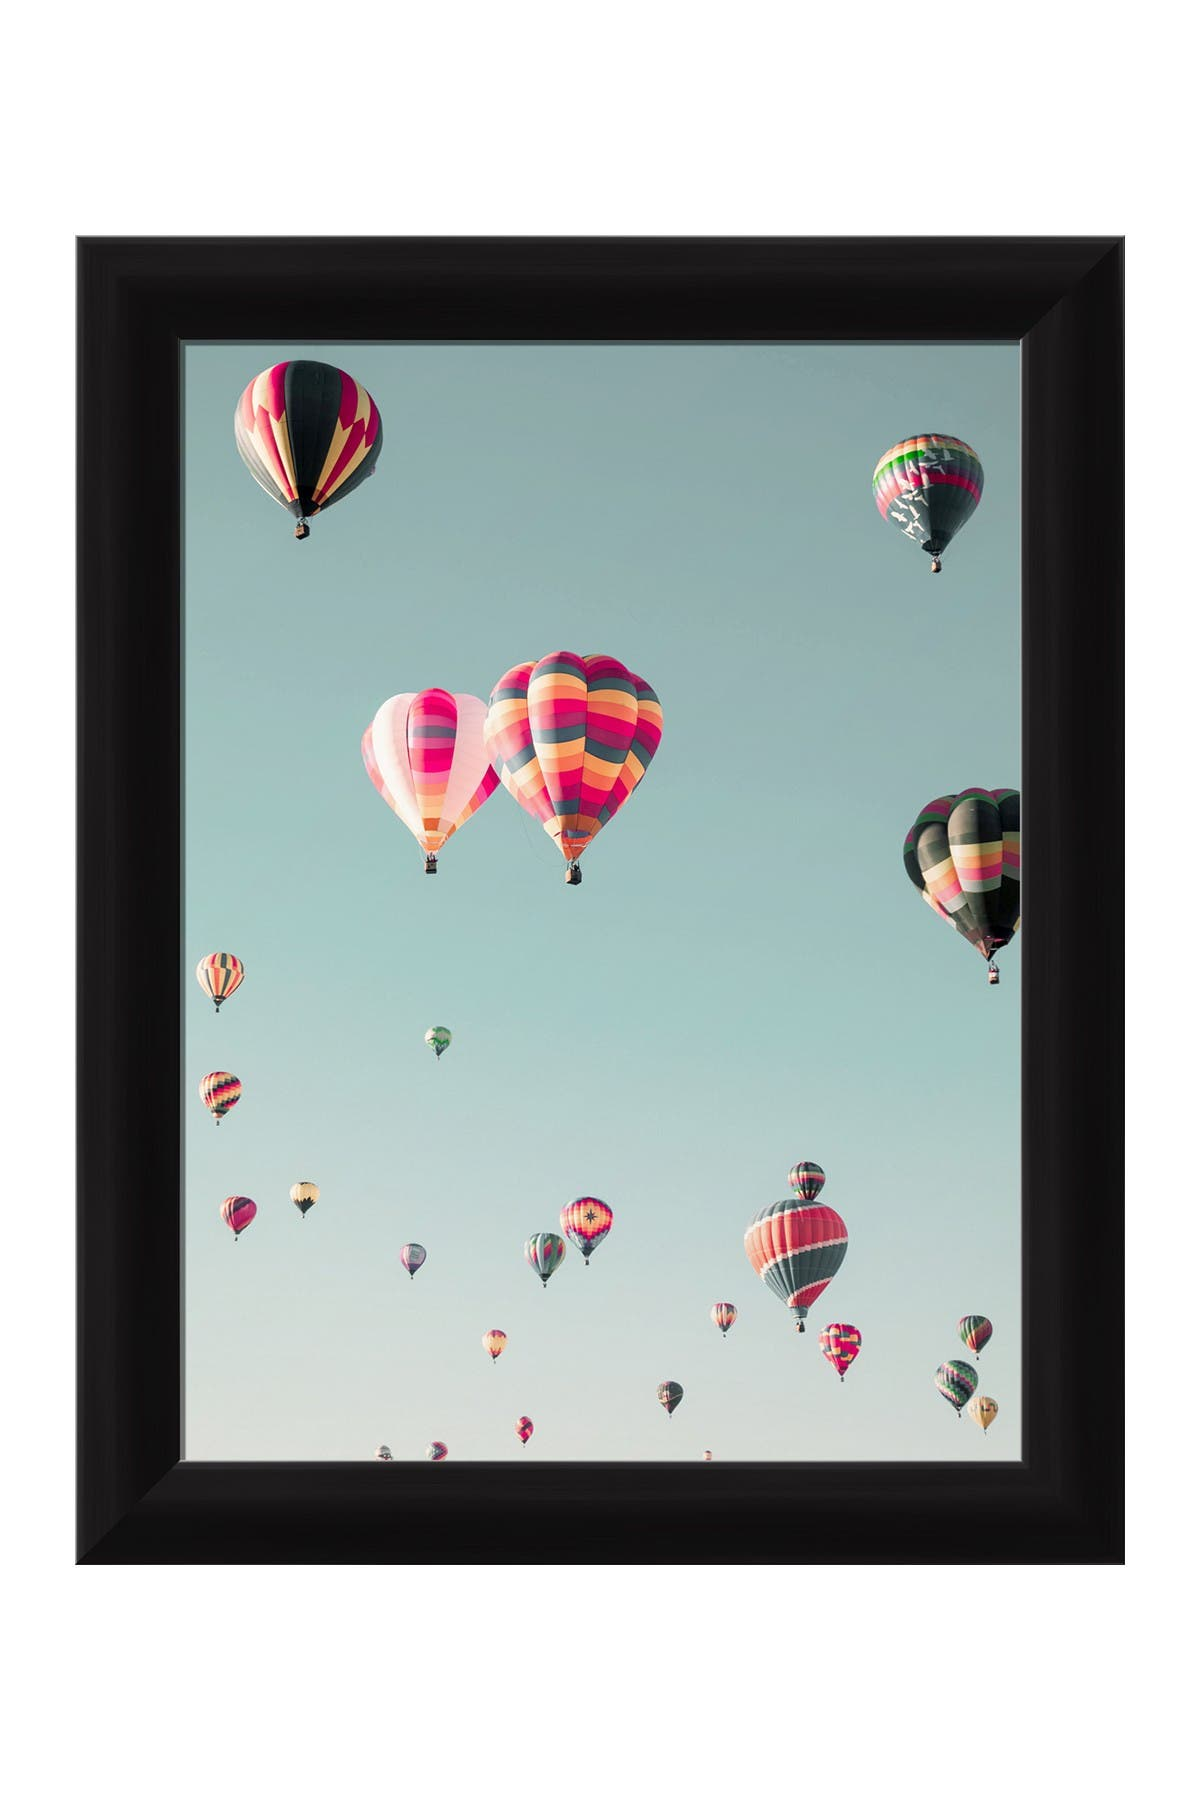 Image of PTM Images Up In The Air I Framed Giclee Print